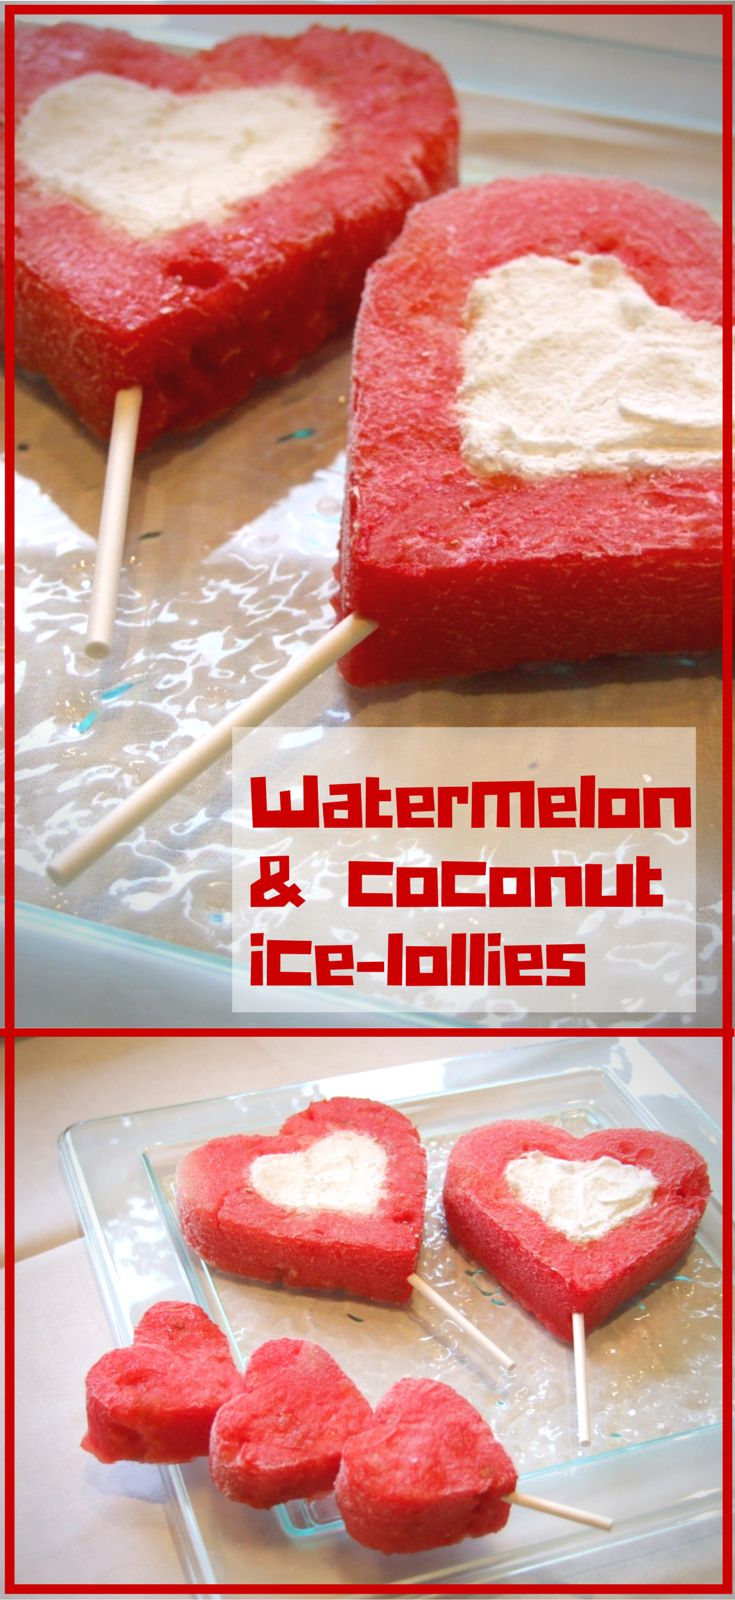 Refreshing and nutritious! 2 ingredient watermelon & coconut ice-lollies